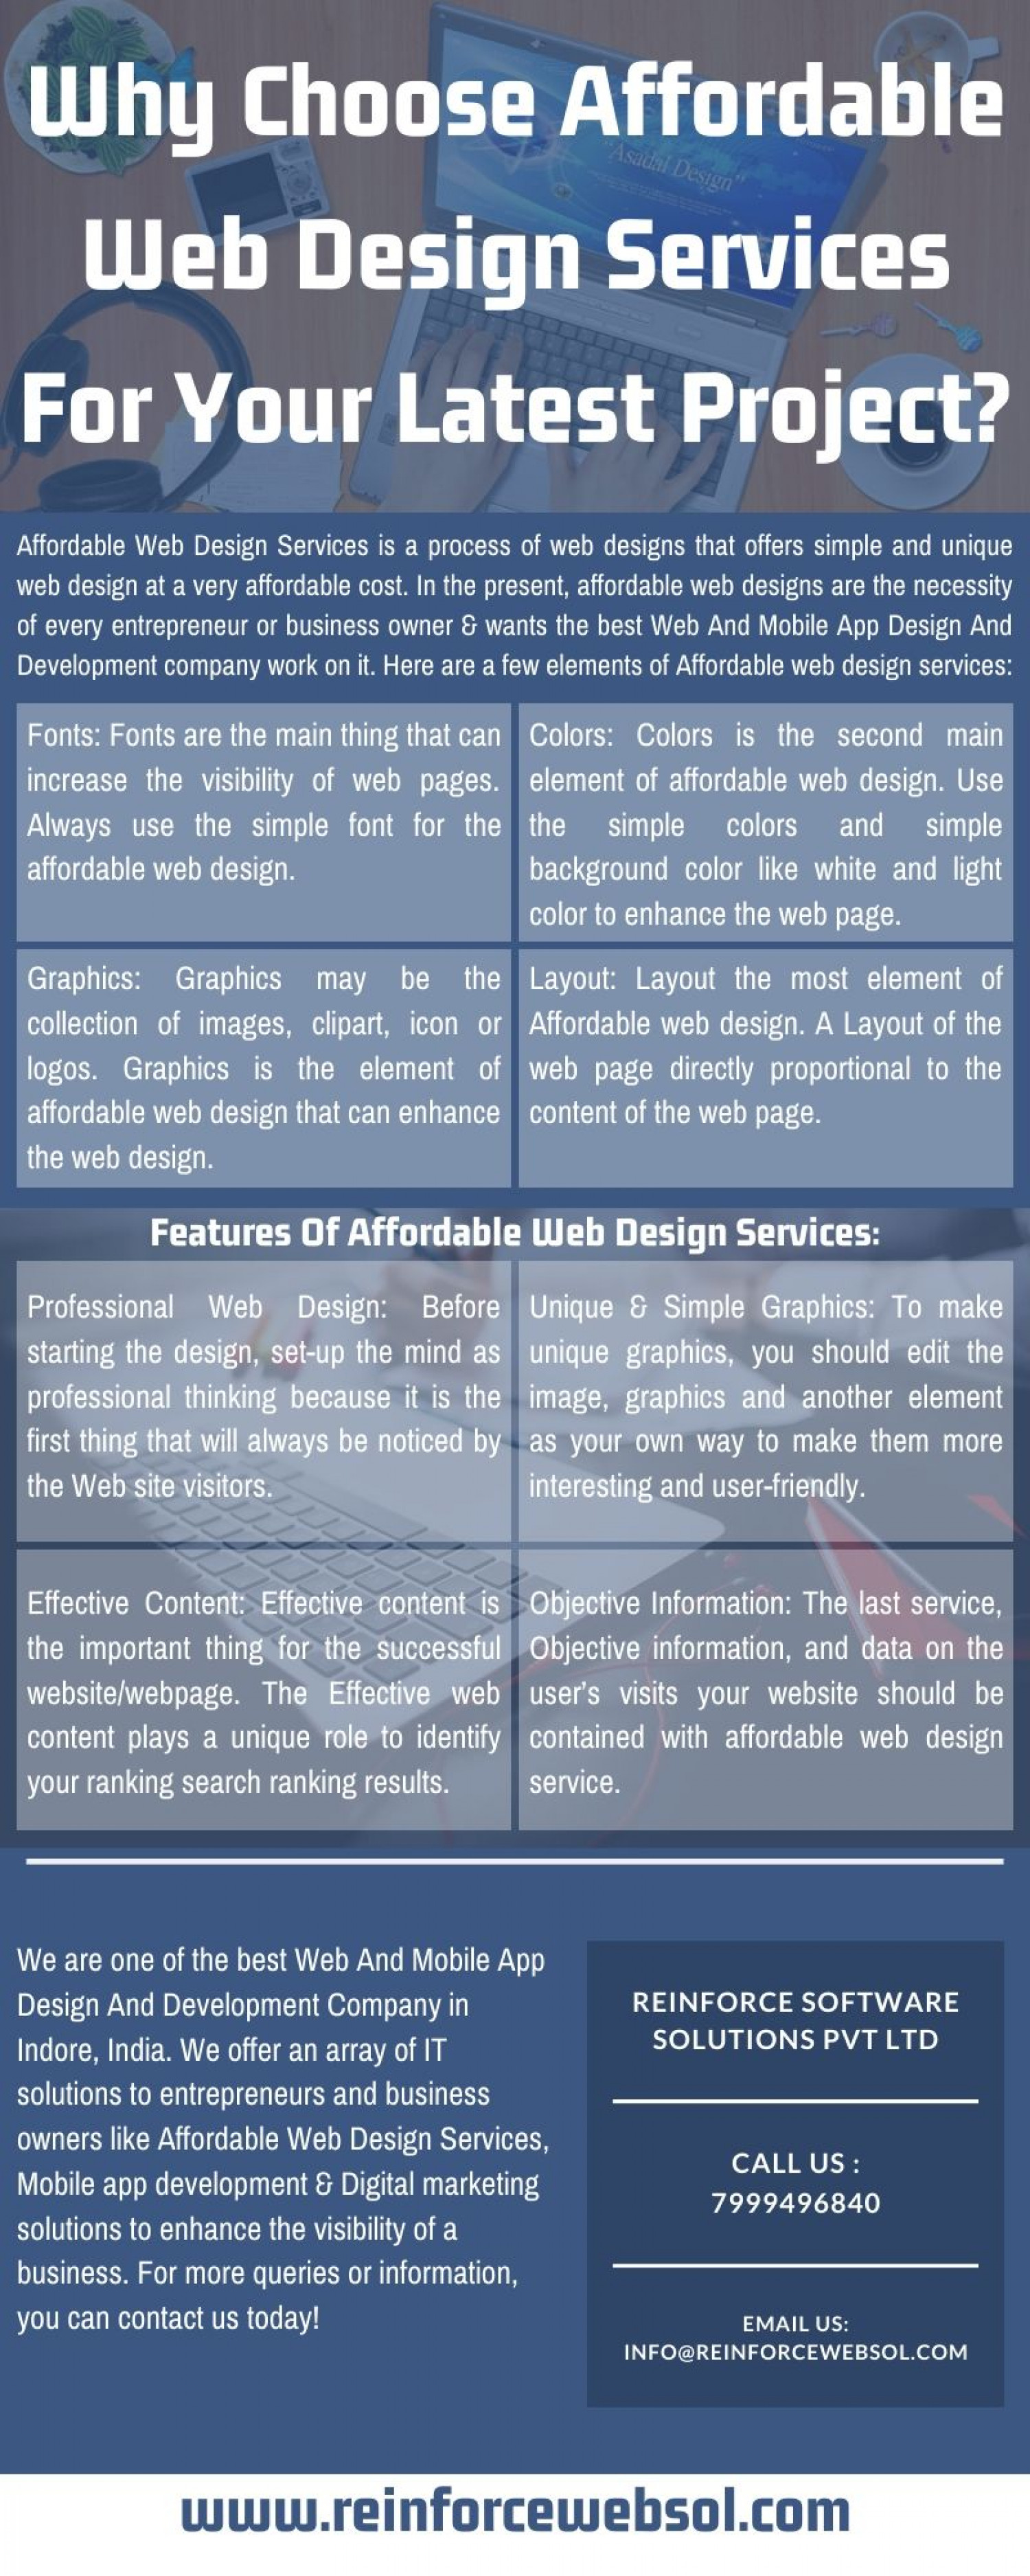 Why Choose Affordable Web Design Services For Your Latest Project Infographic